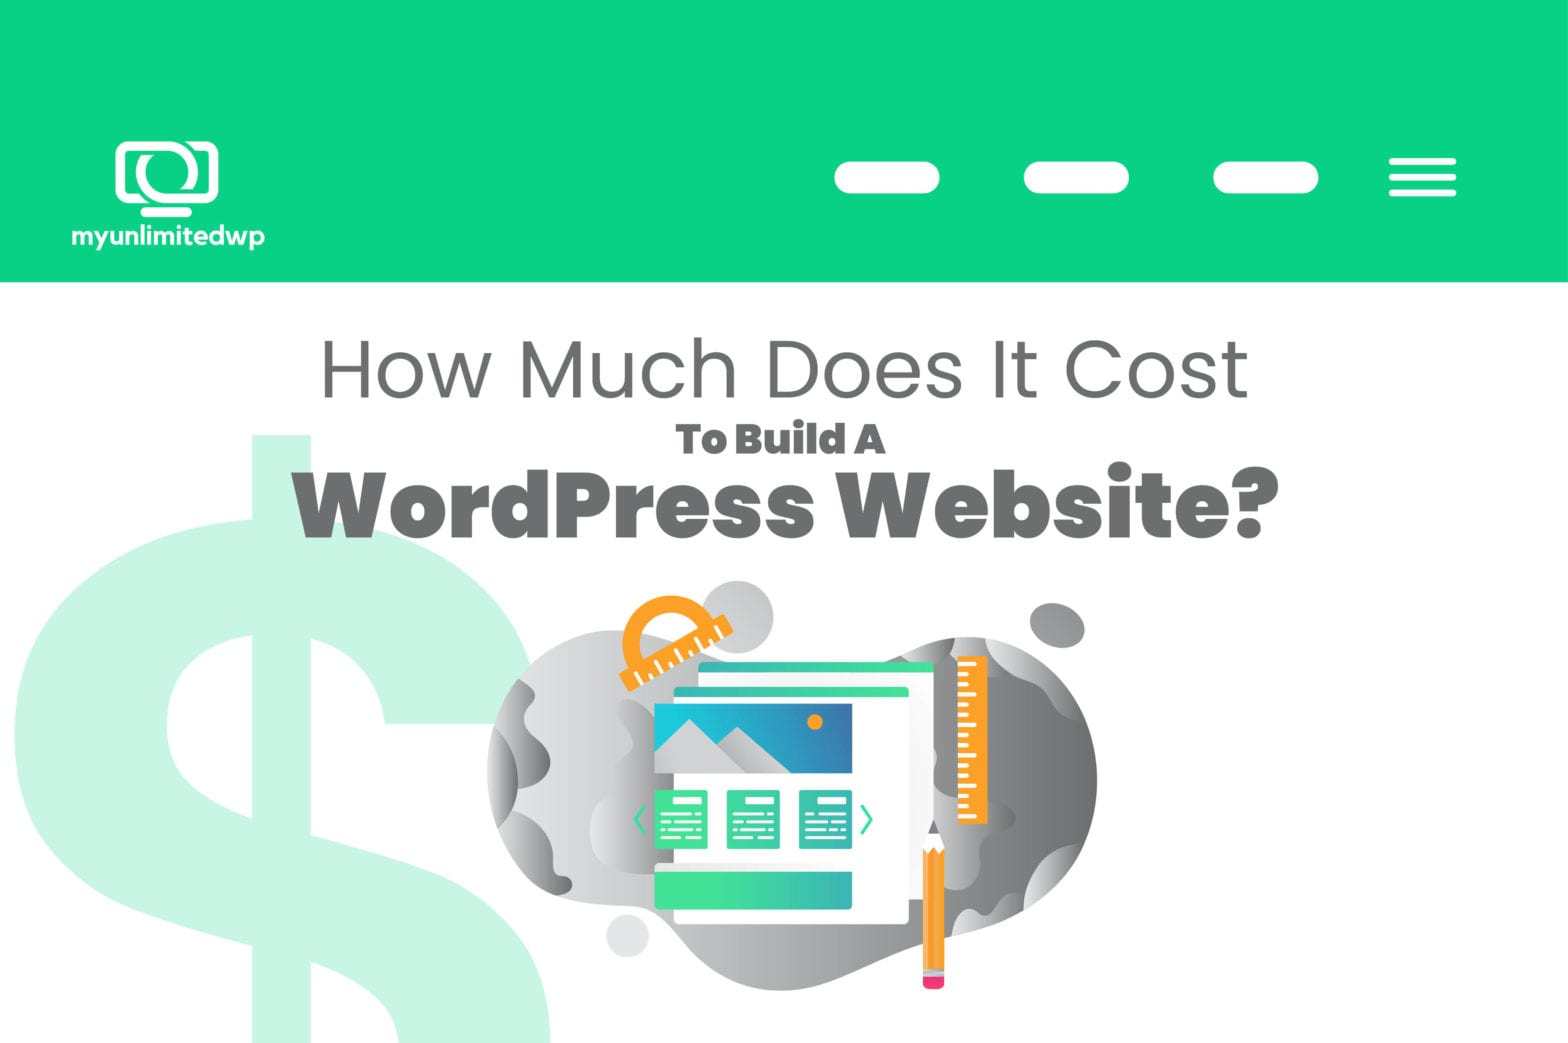 Cost to build a Wordpress website